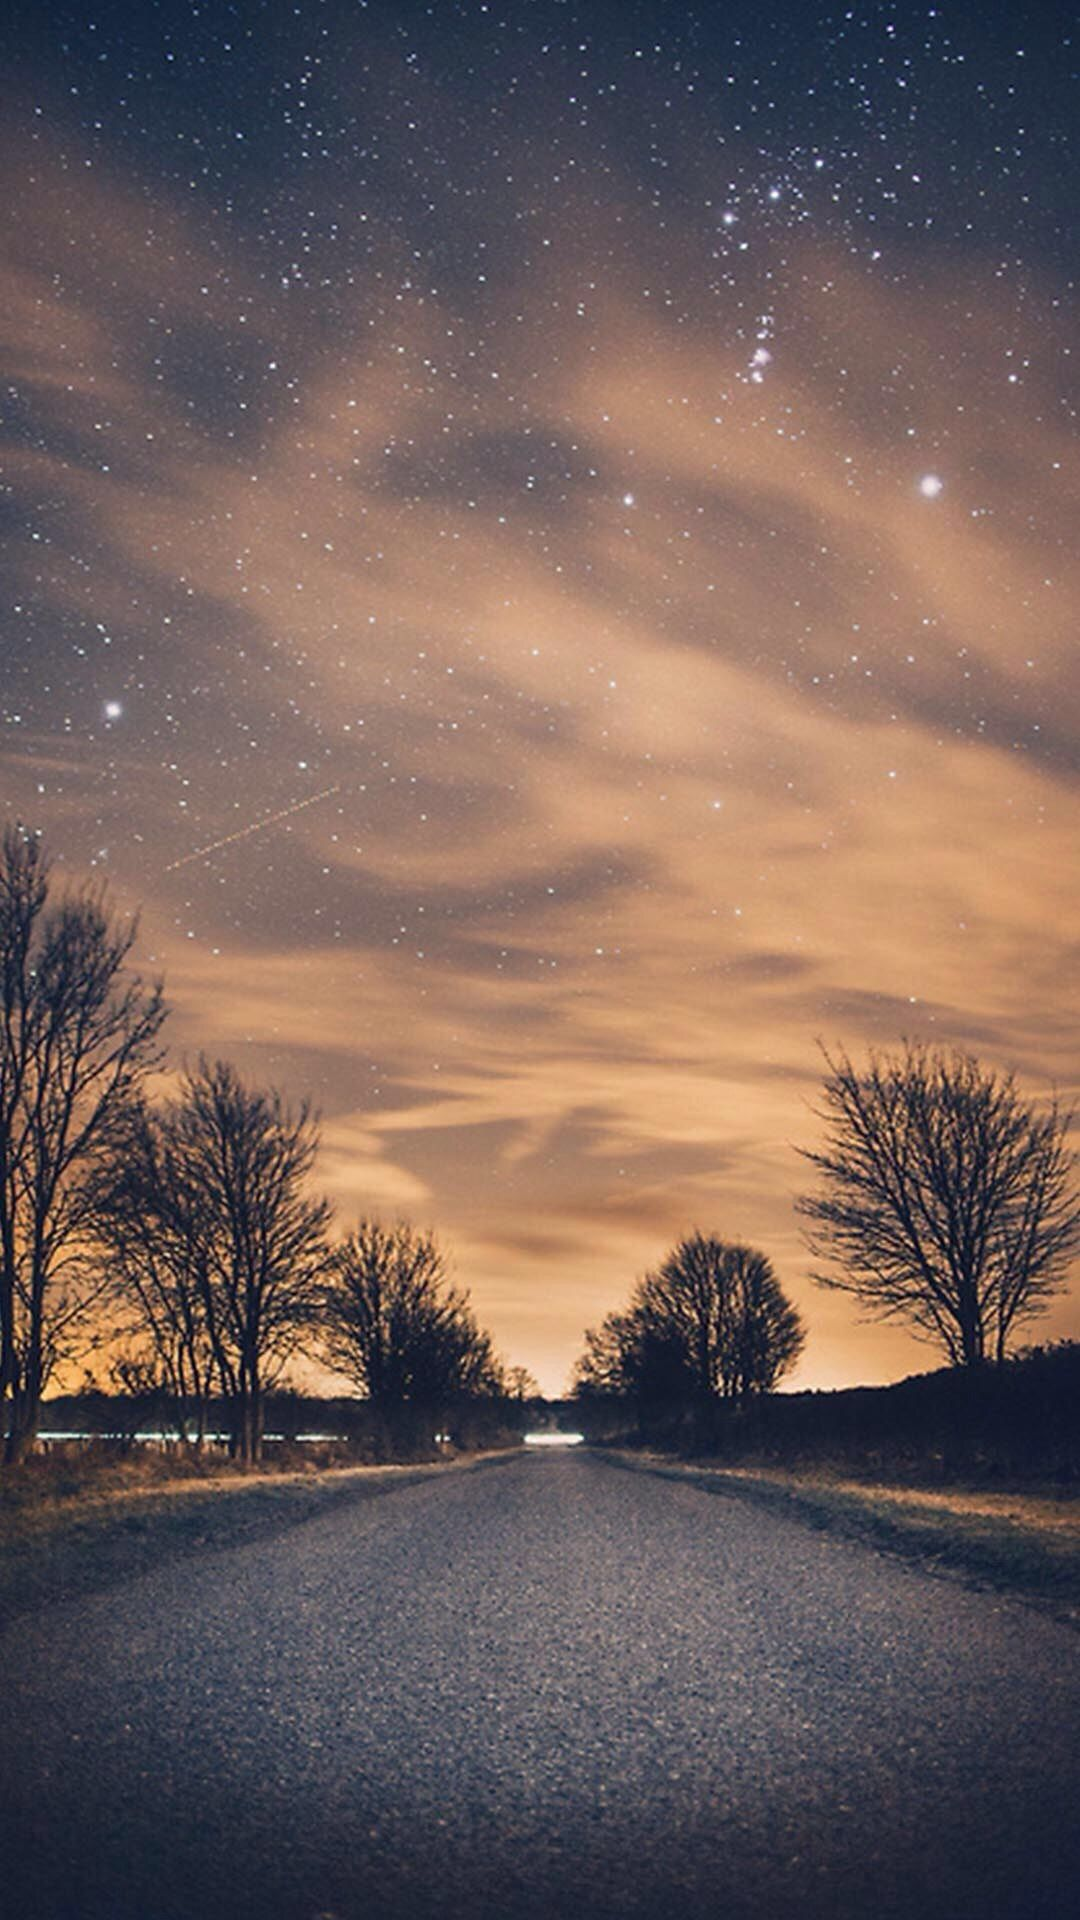 Nature Night Shiny Road Endless Tree Roadside iPhone 6 1080x1920